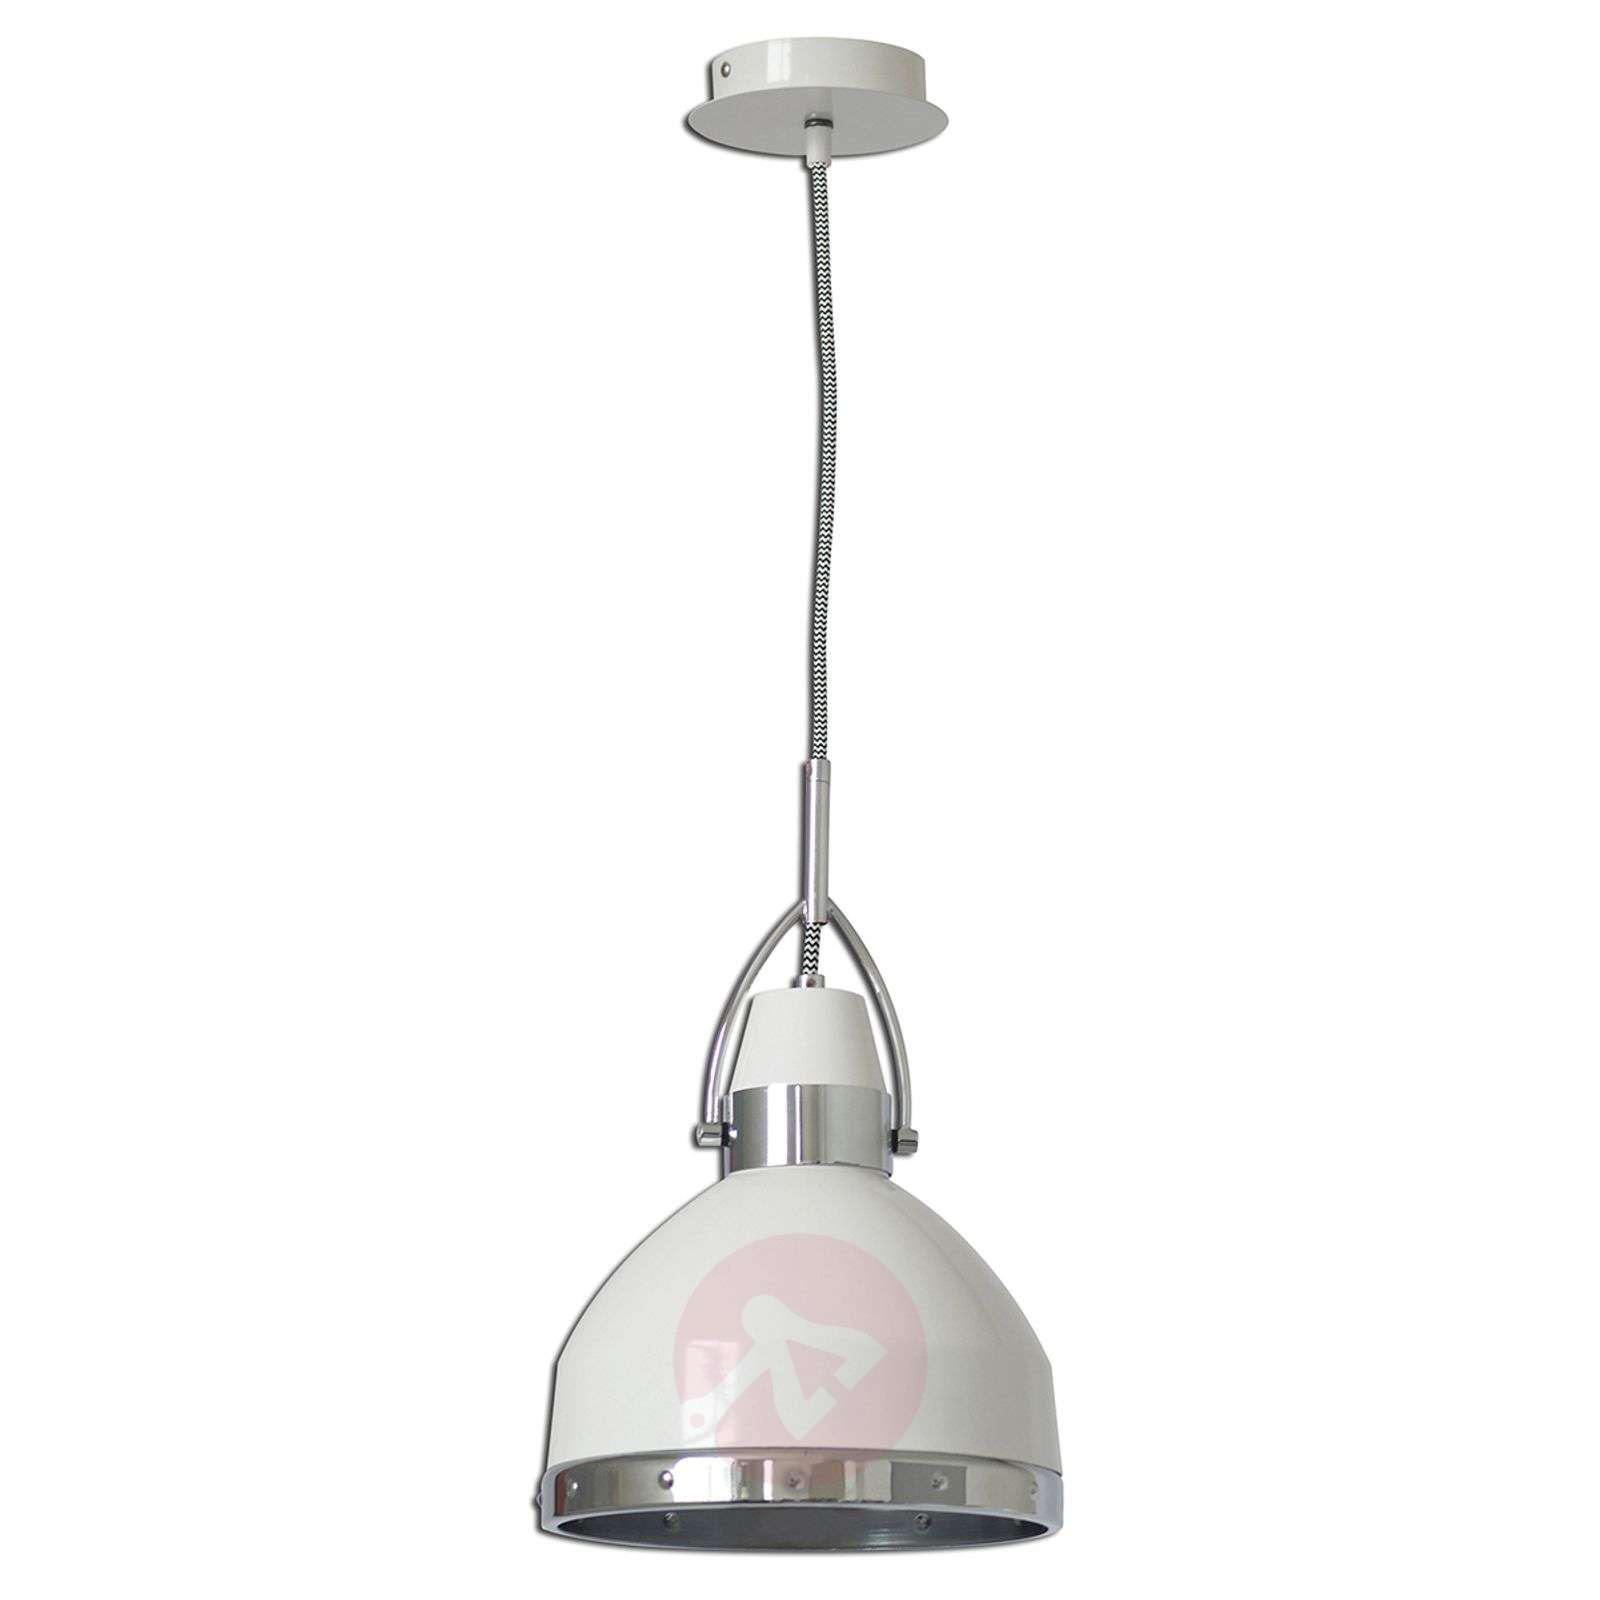 Suspension blanche Britta au design industriel-7000850-01